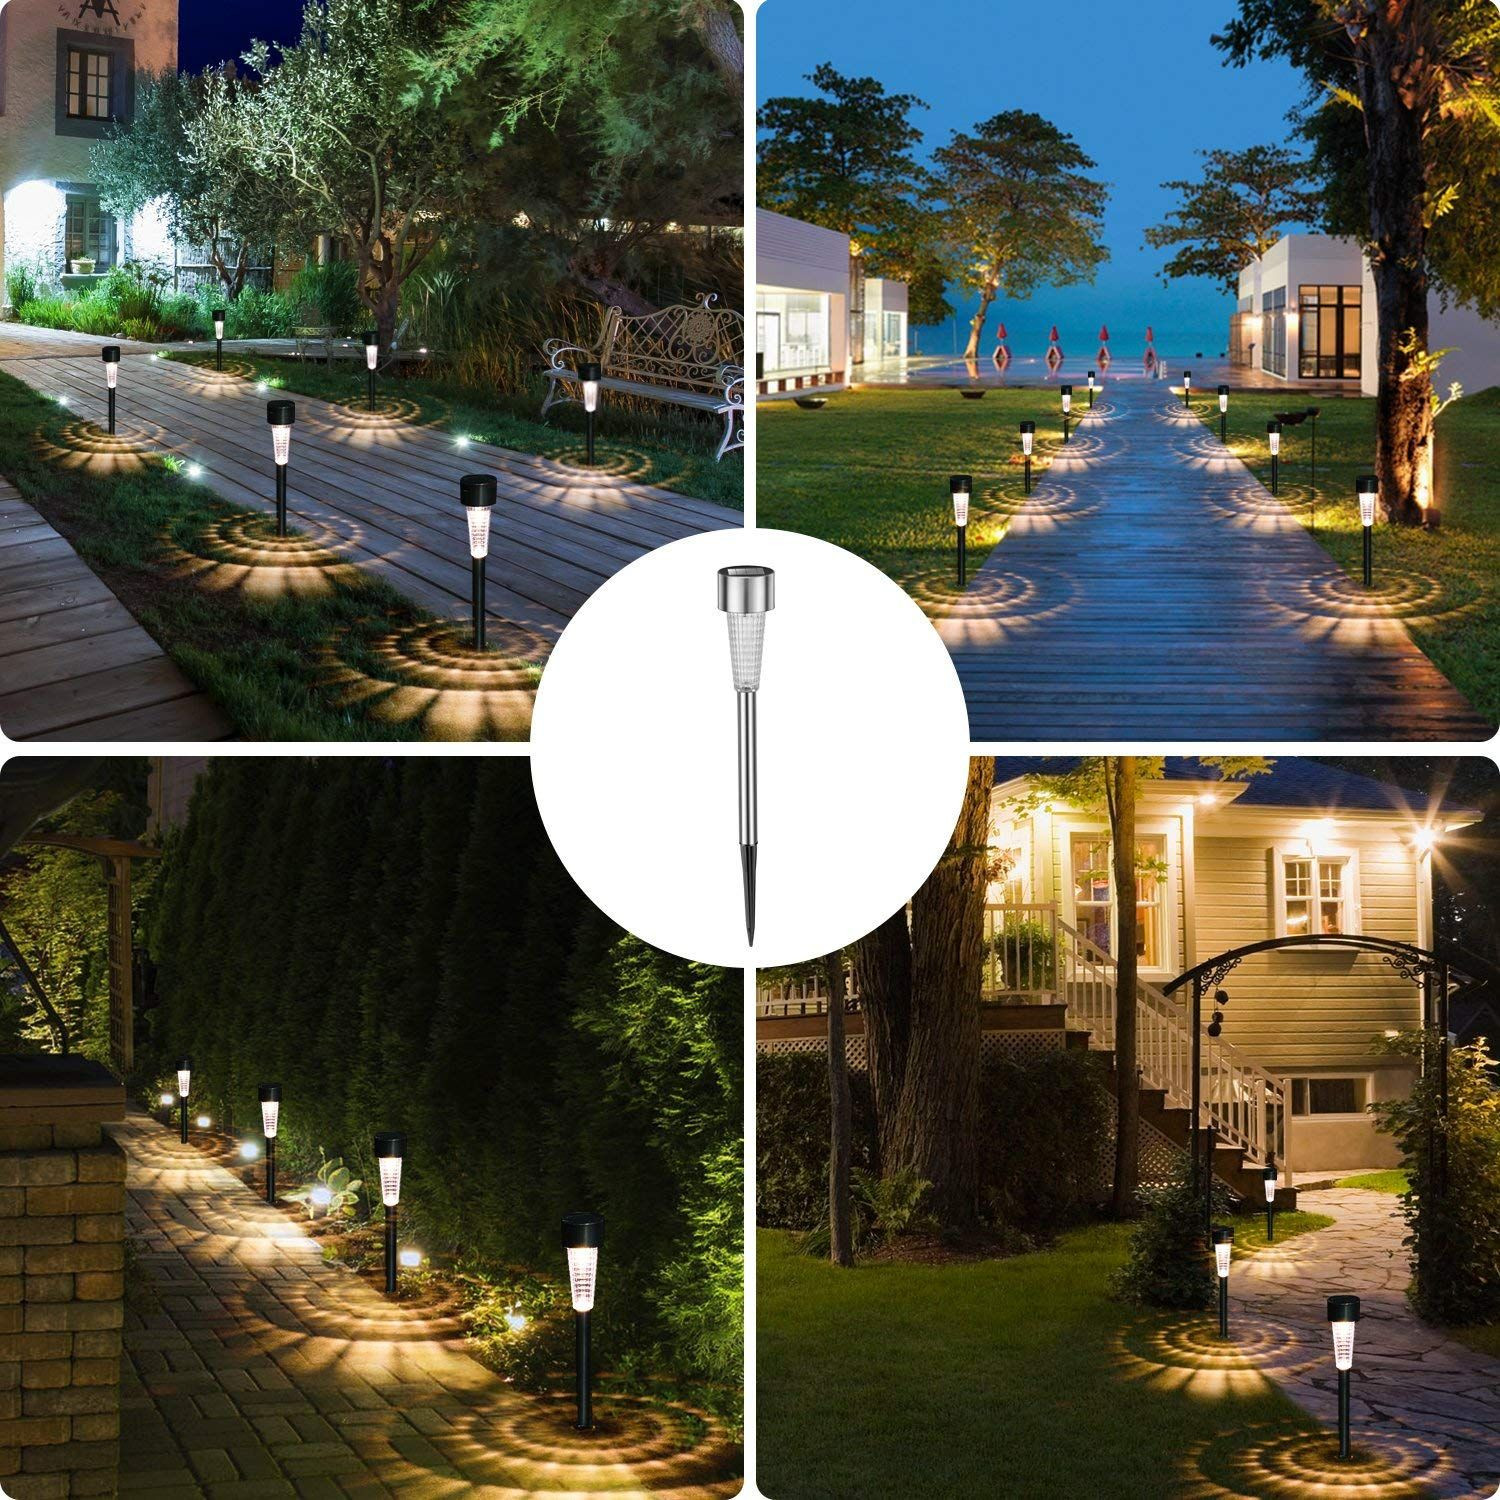 Concise And Elegant Durable Matt Black Painted Stainless Steel With Clear Plastic Lens Outdoor Pathway Lighting Solar Lights Garden Outdoor Landscape Lighting